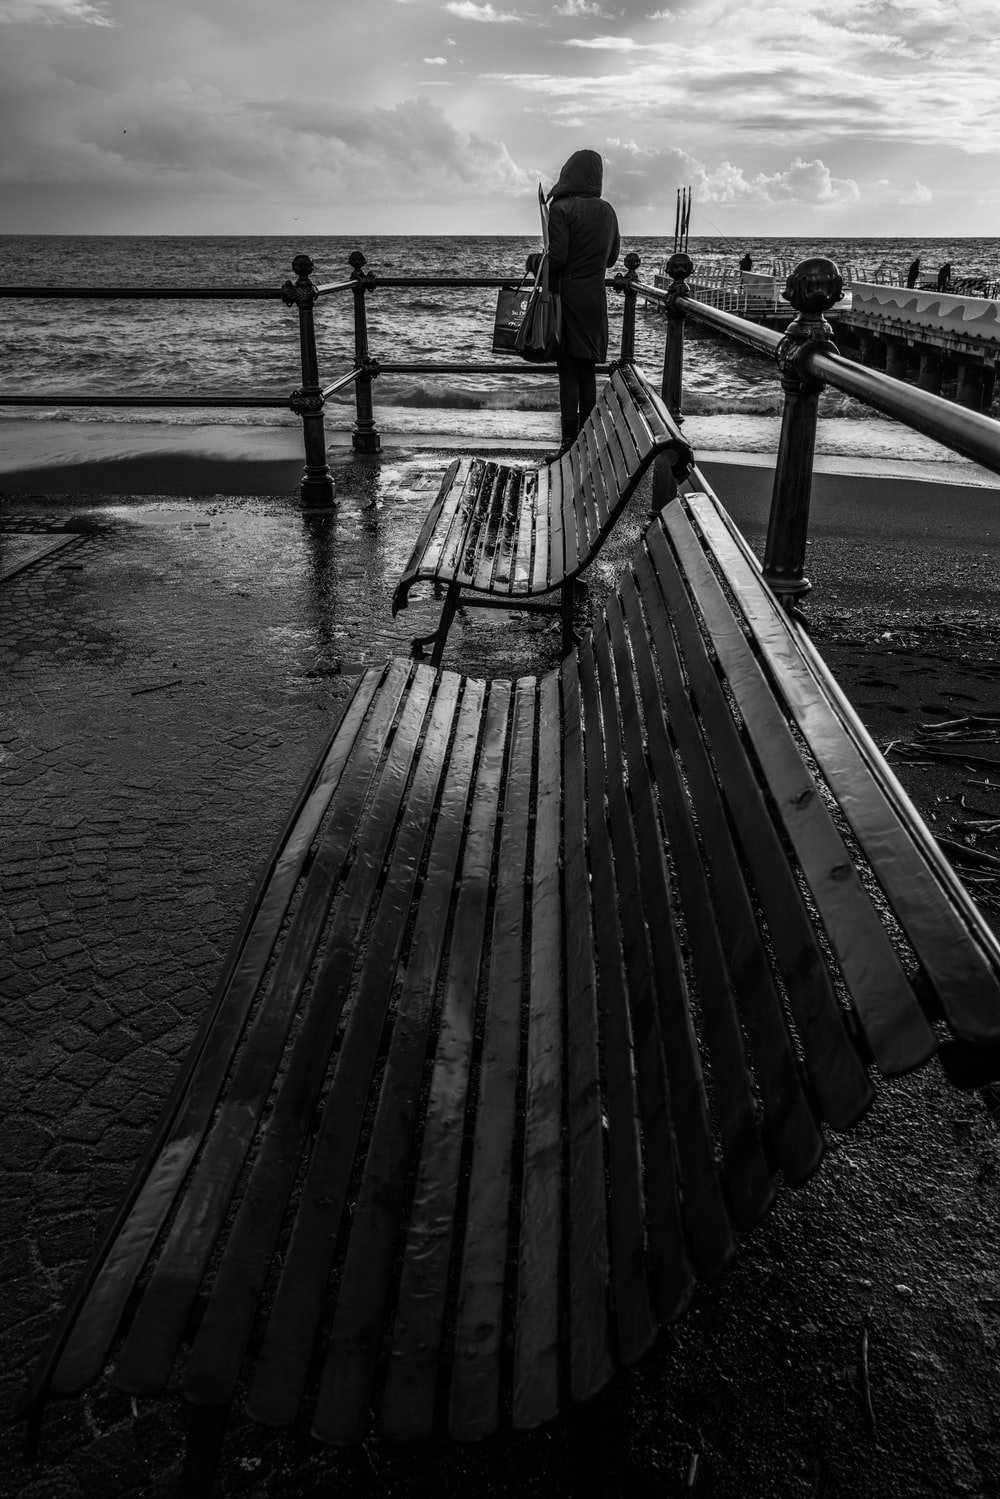 grayscale photo of person walking on wooden dock